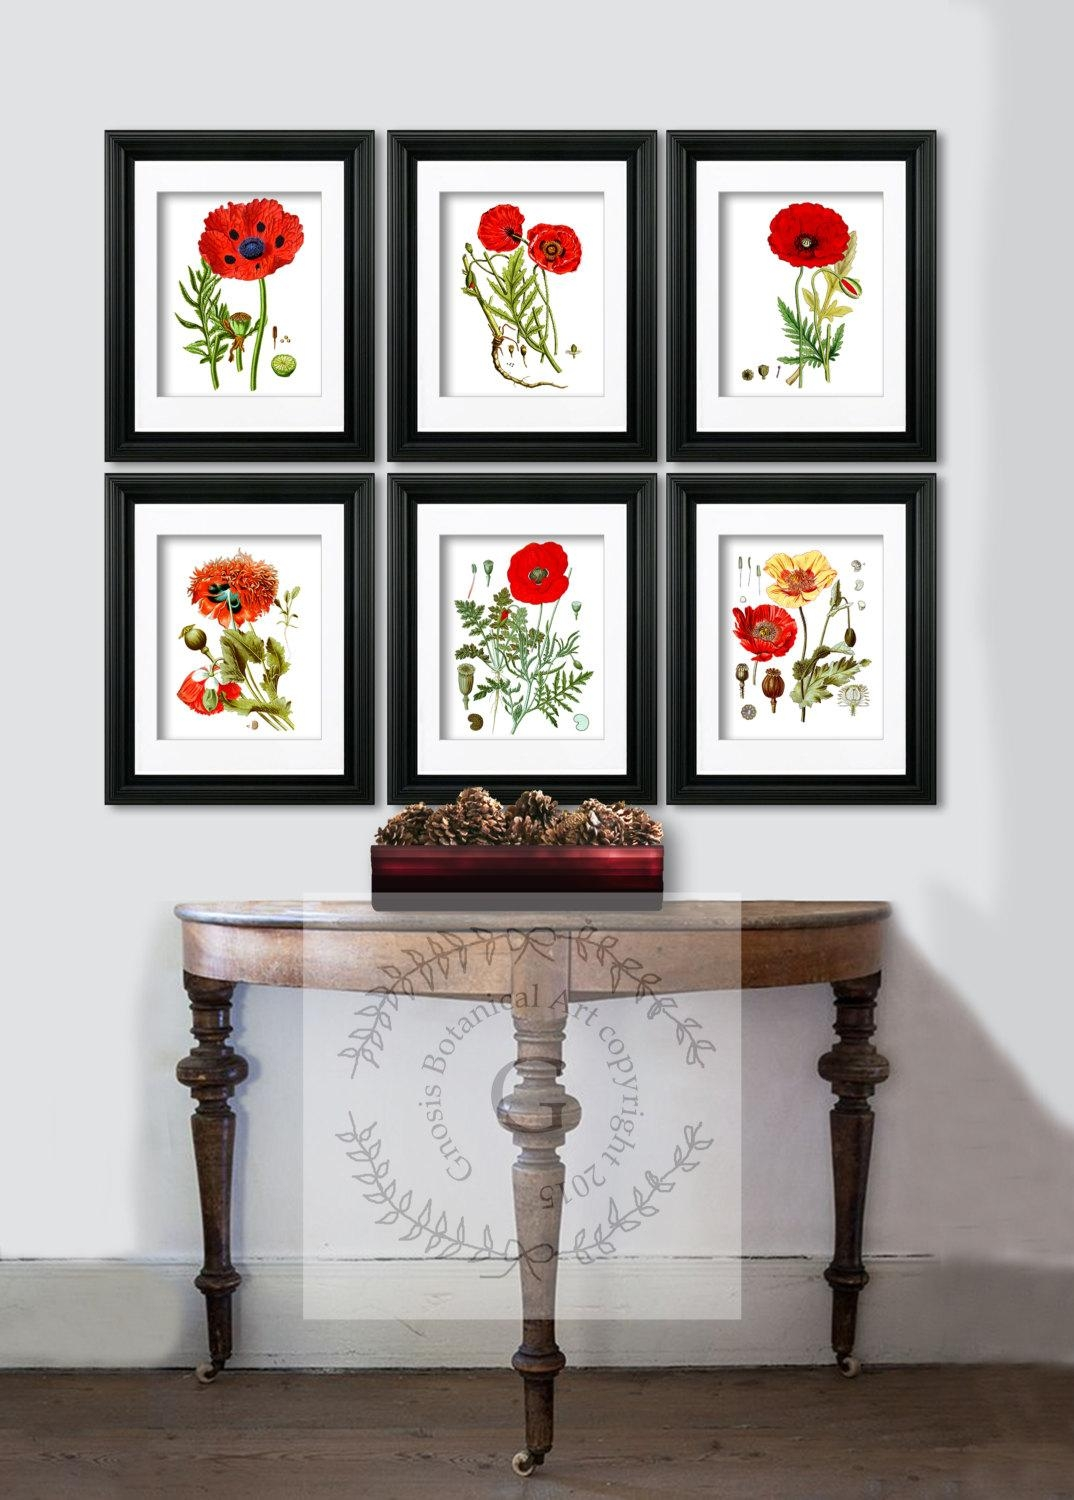 Red Poppy Decor Botanical Prints Red Flowers Poppy Wall Art in Wall Art Print Sets